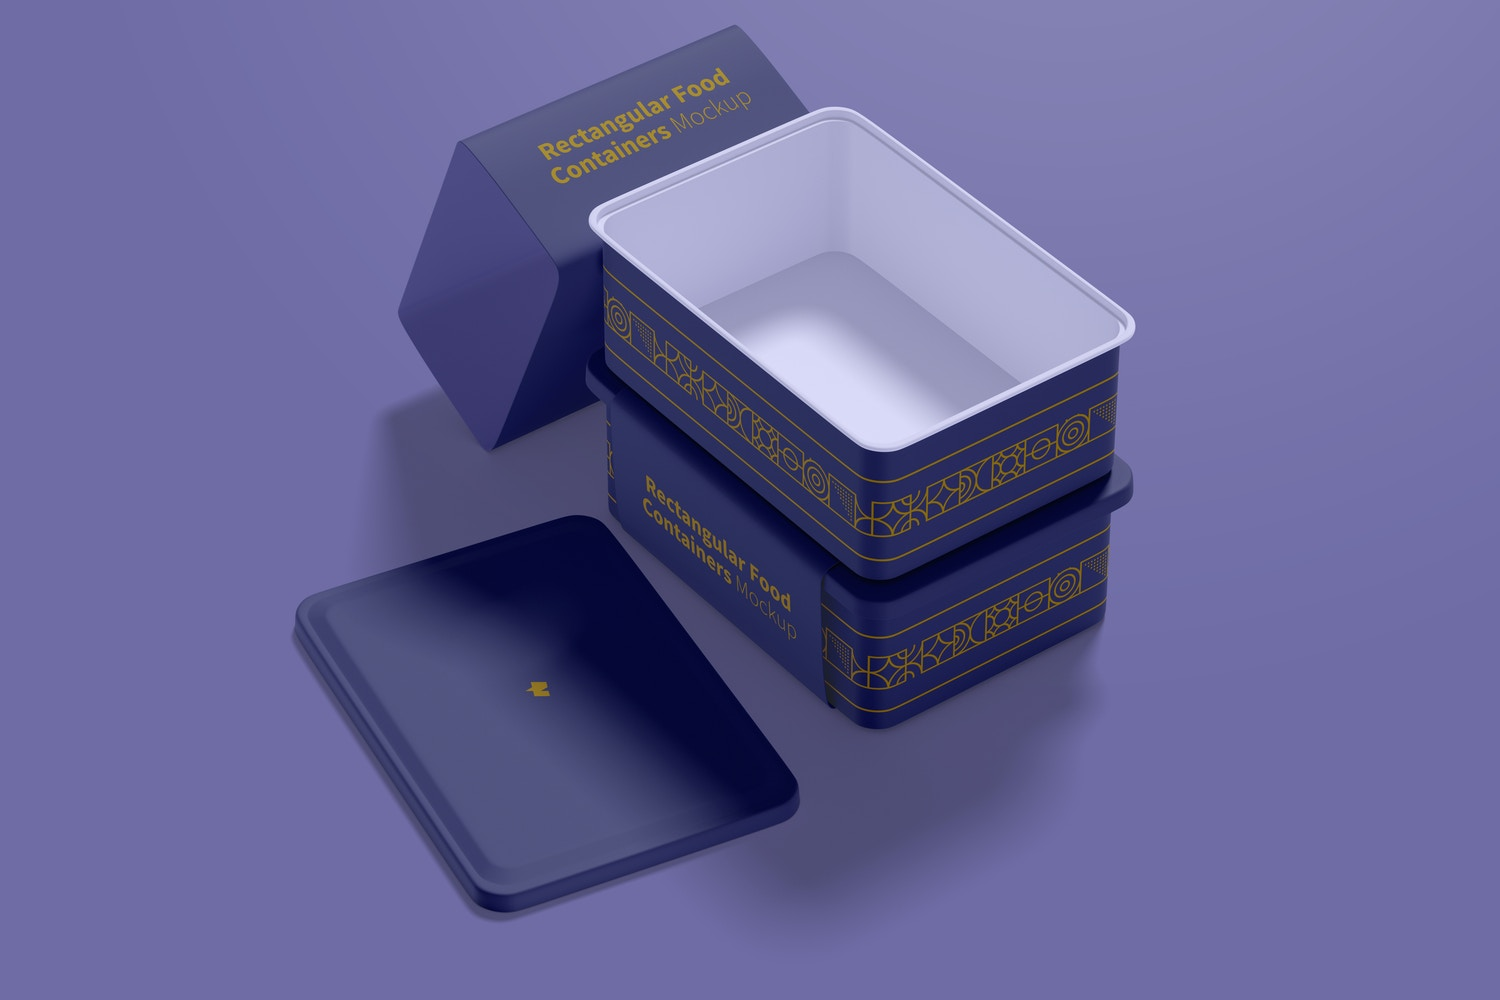 Note that although the container is plastic, it brings a paper area for you to display the brand product.